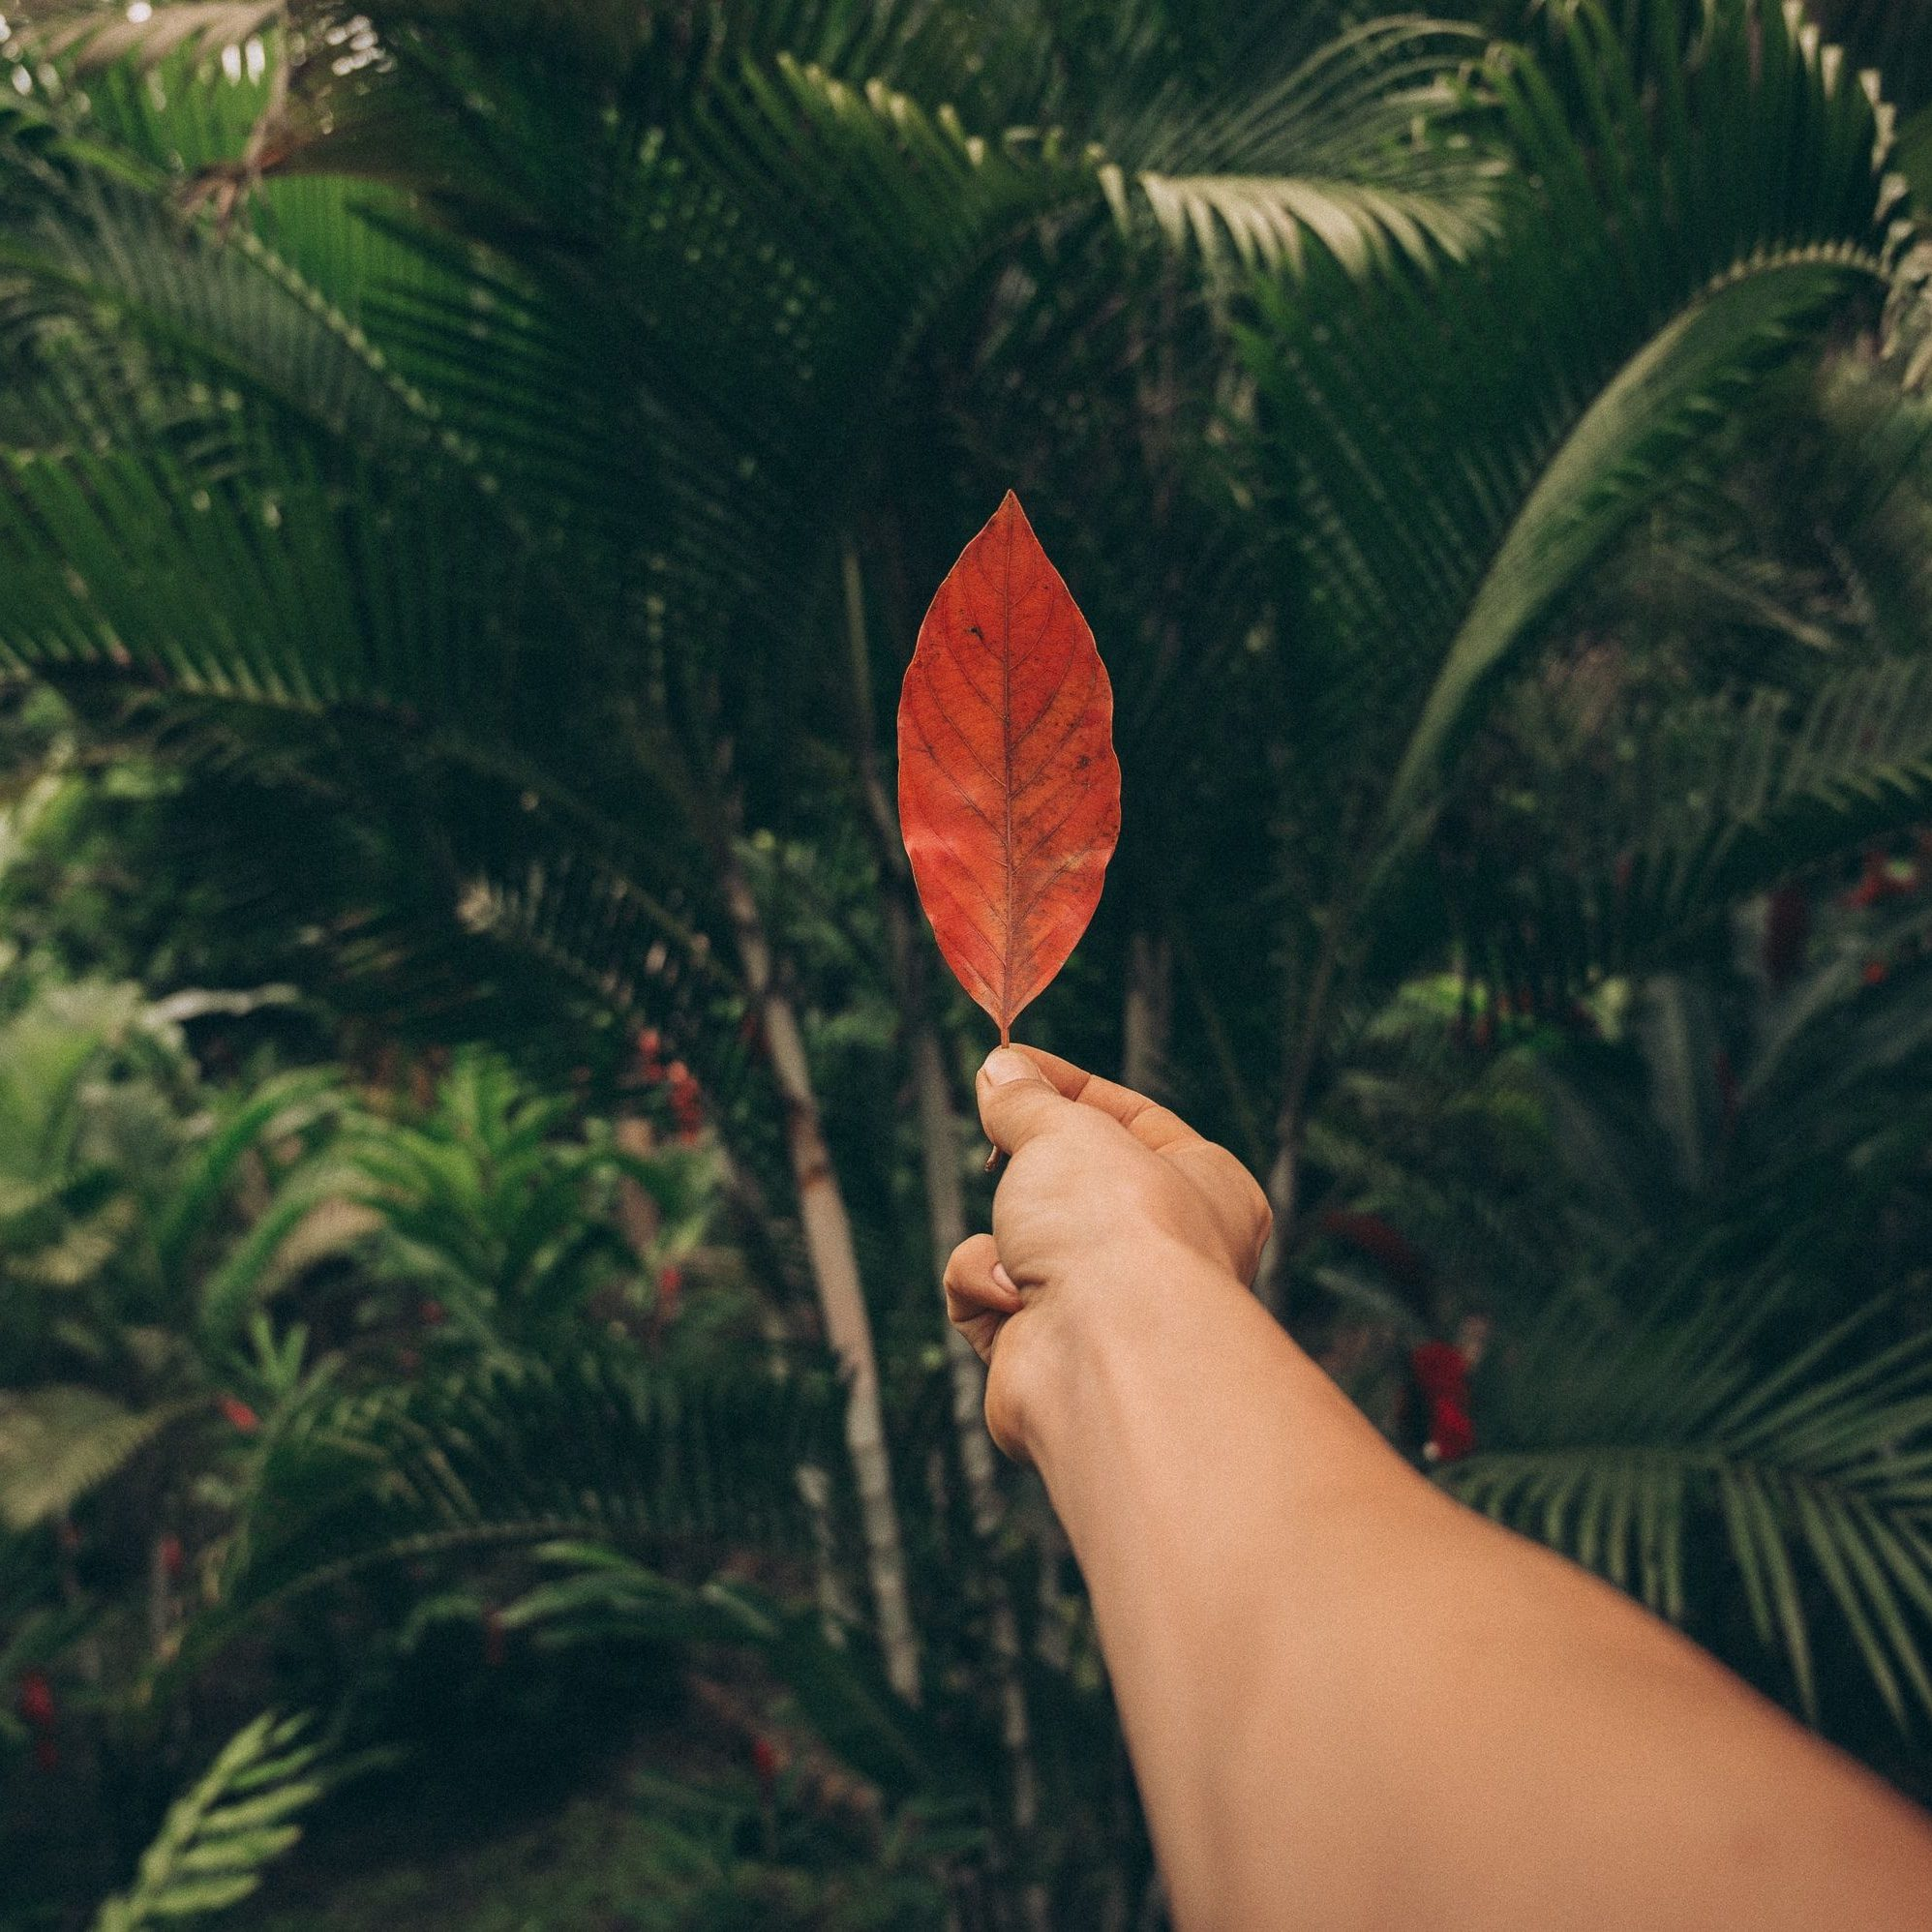 Tropical-Forest-Conscious_Design_Unsplash